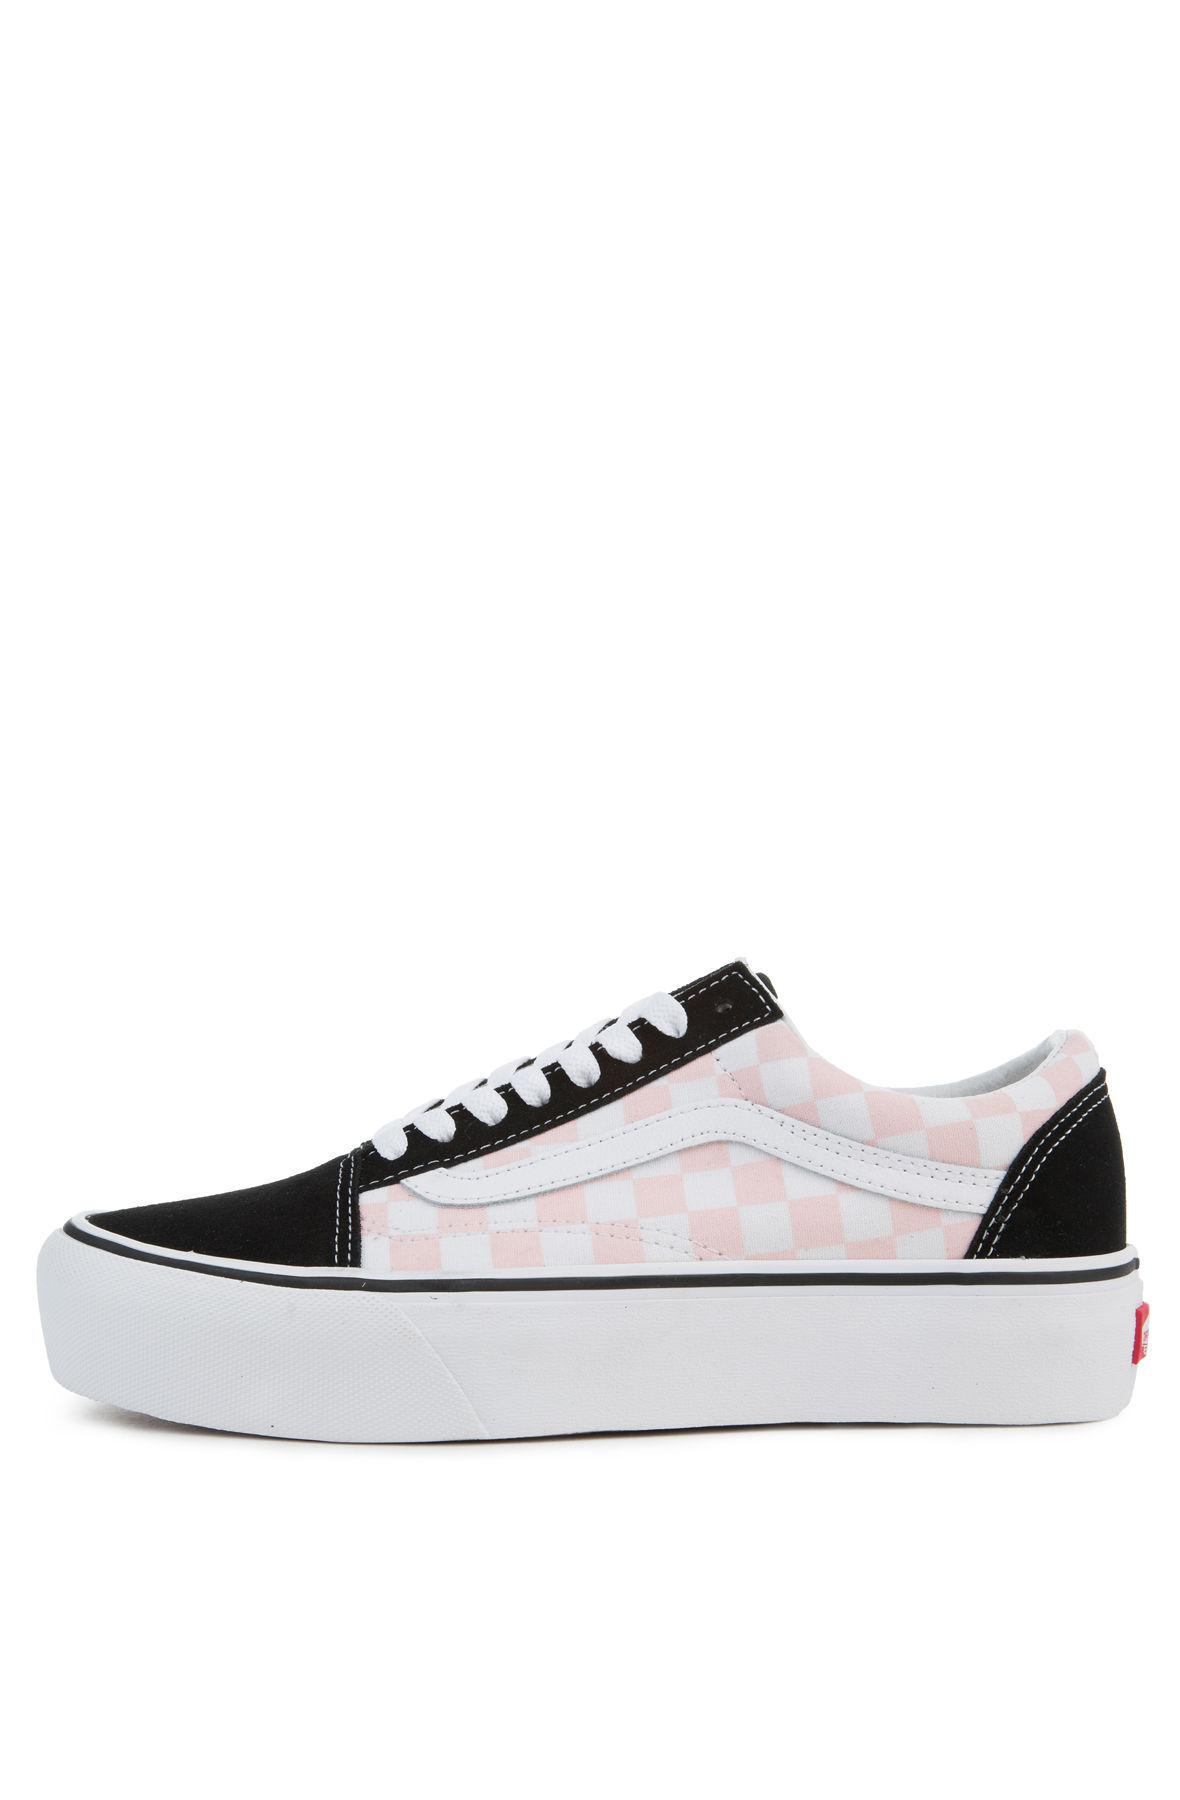 43f4888d6600 Lyst - Vans The Women s Old Skool Platform In Checkerboard Black And ...